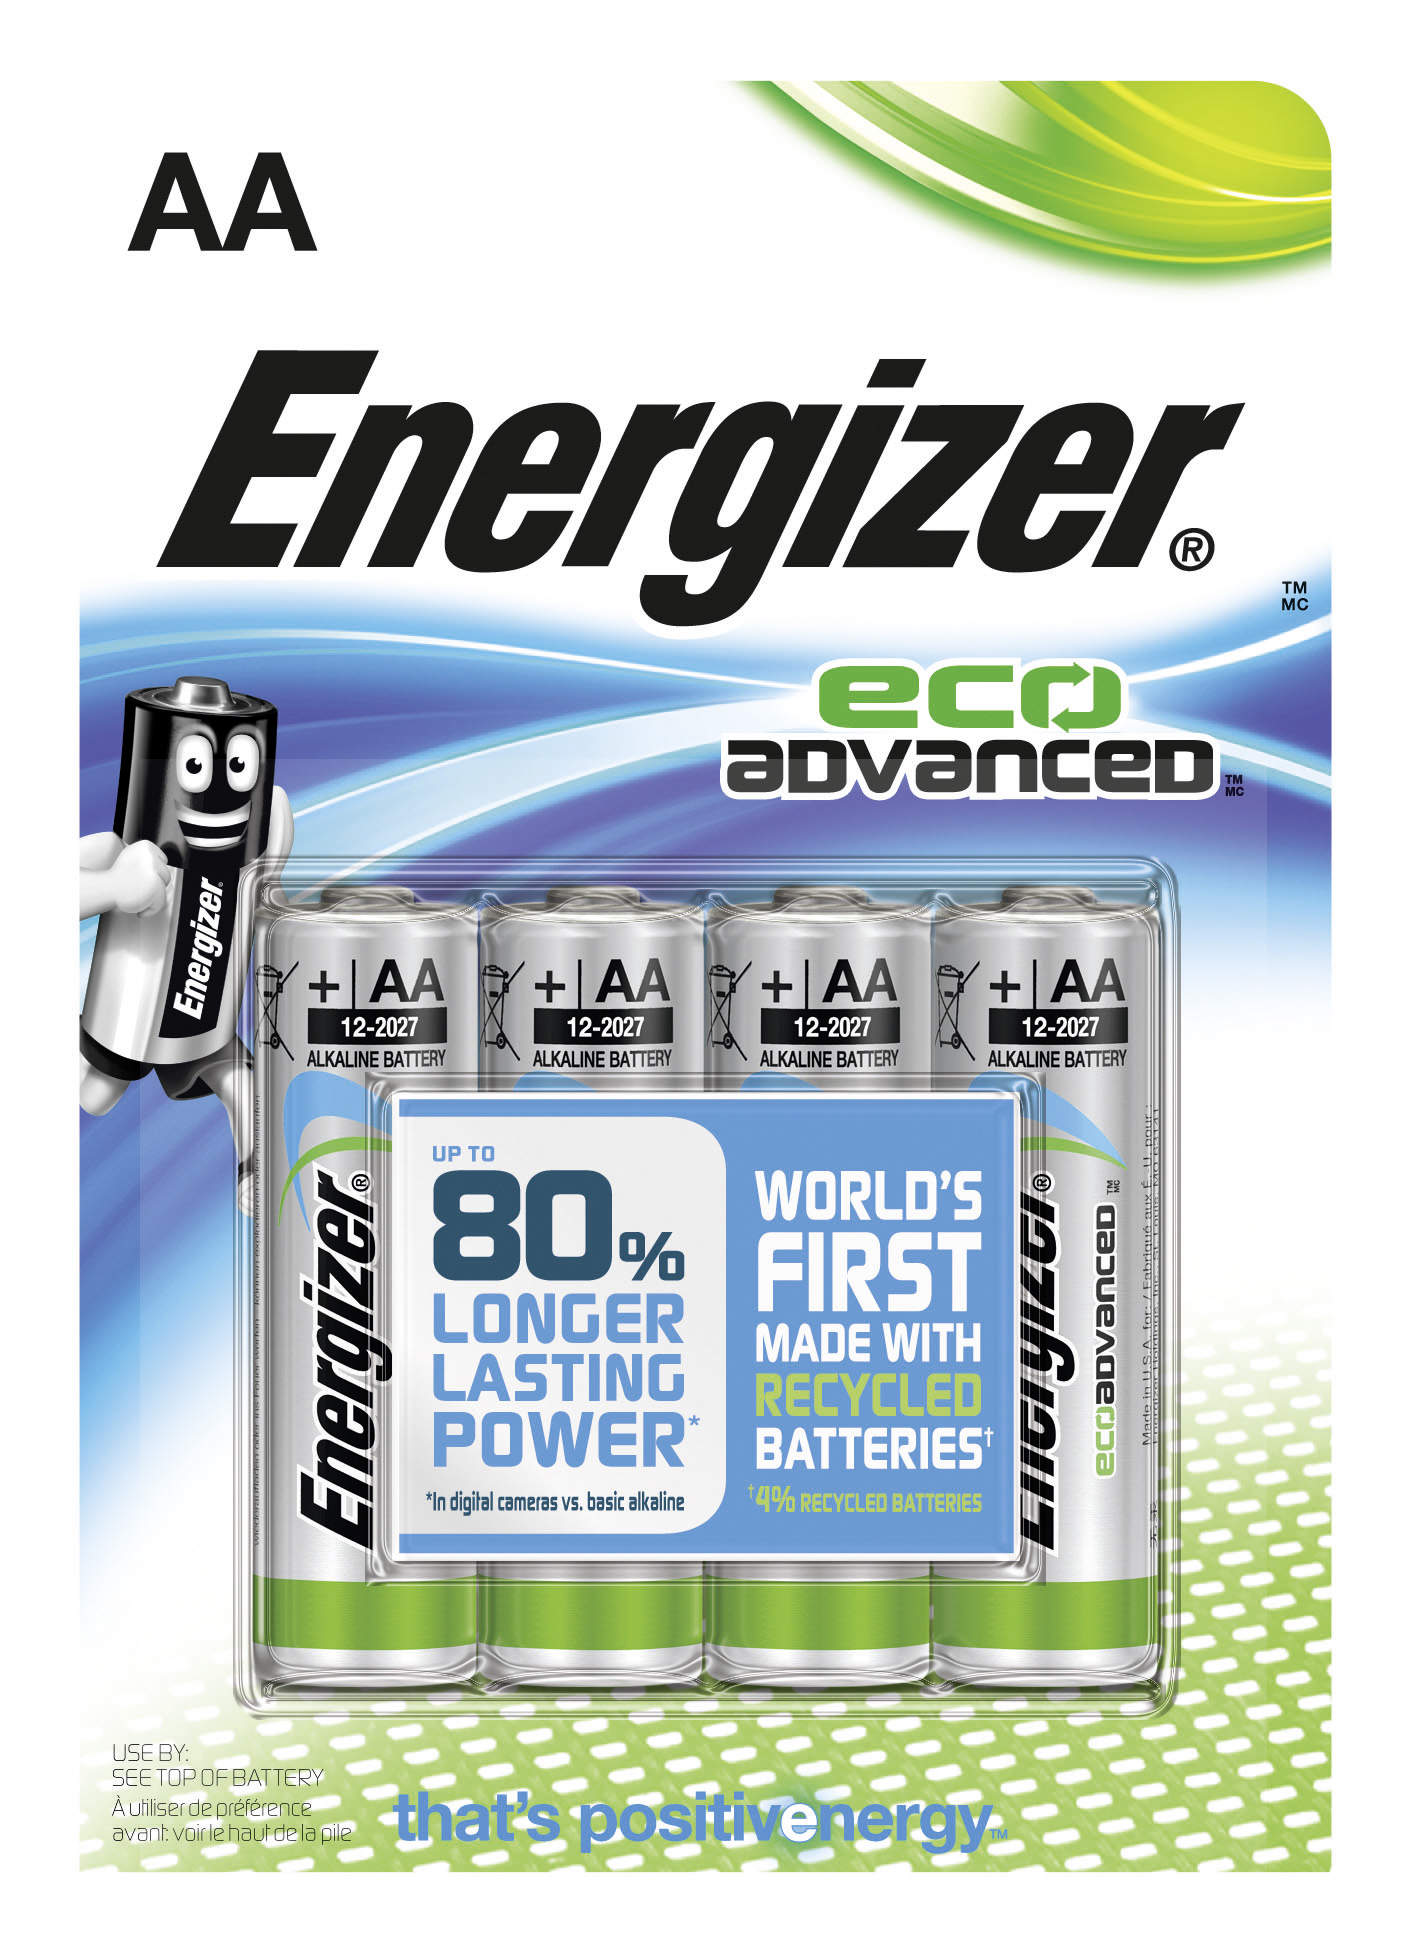 Energizer Eco Advanced Recycle battery AA 4%